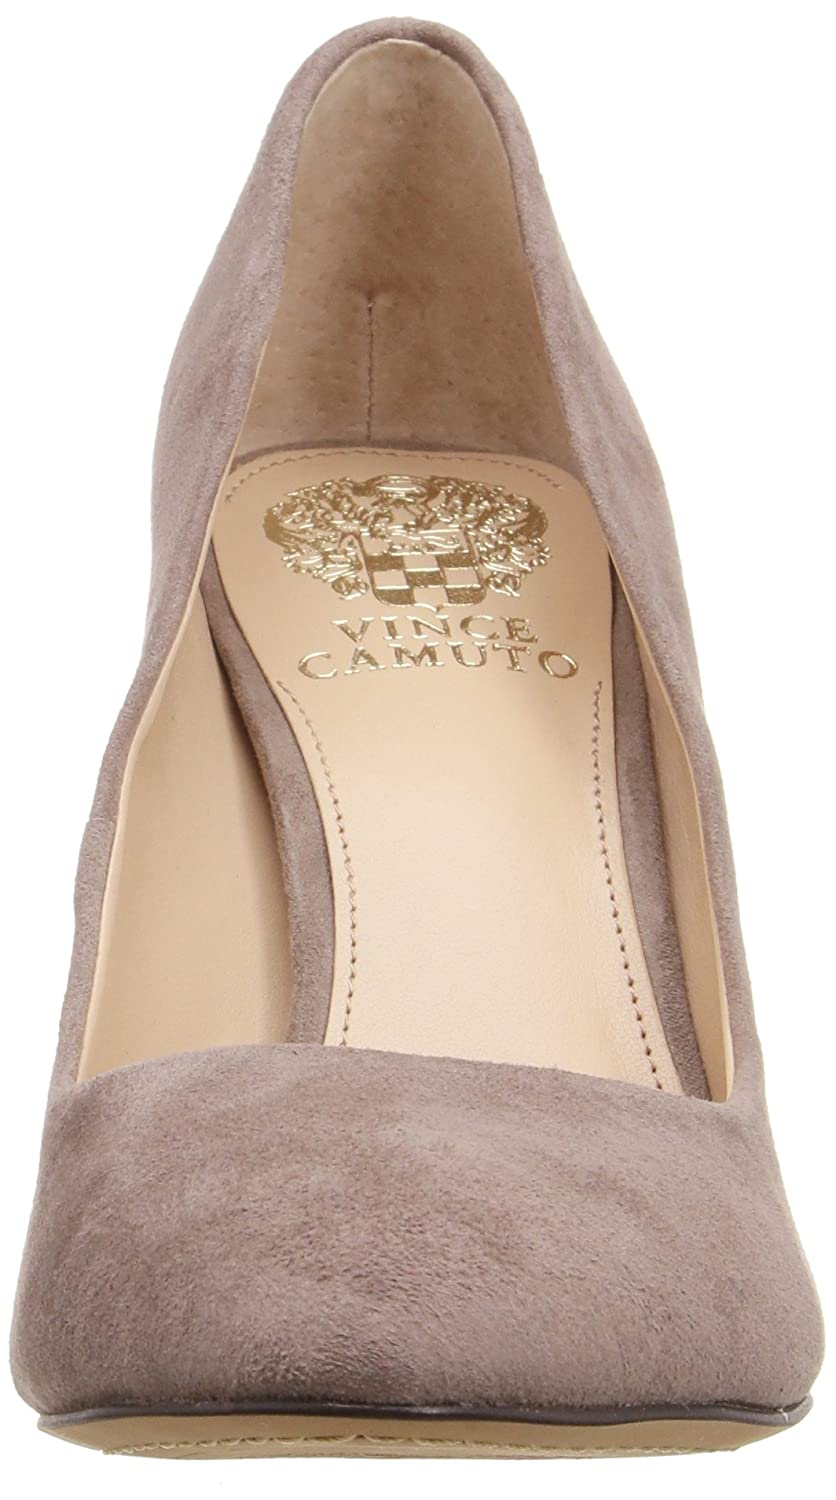 Vince Camuto Women's Dallan Dress Pump B01FWXDD44 8.5 B(M) US|Stone Taupe